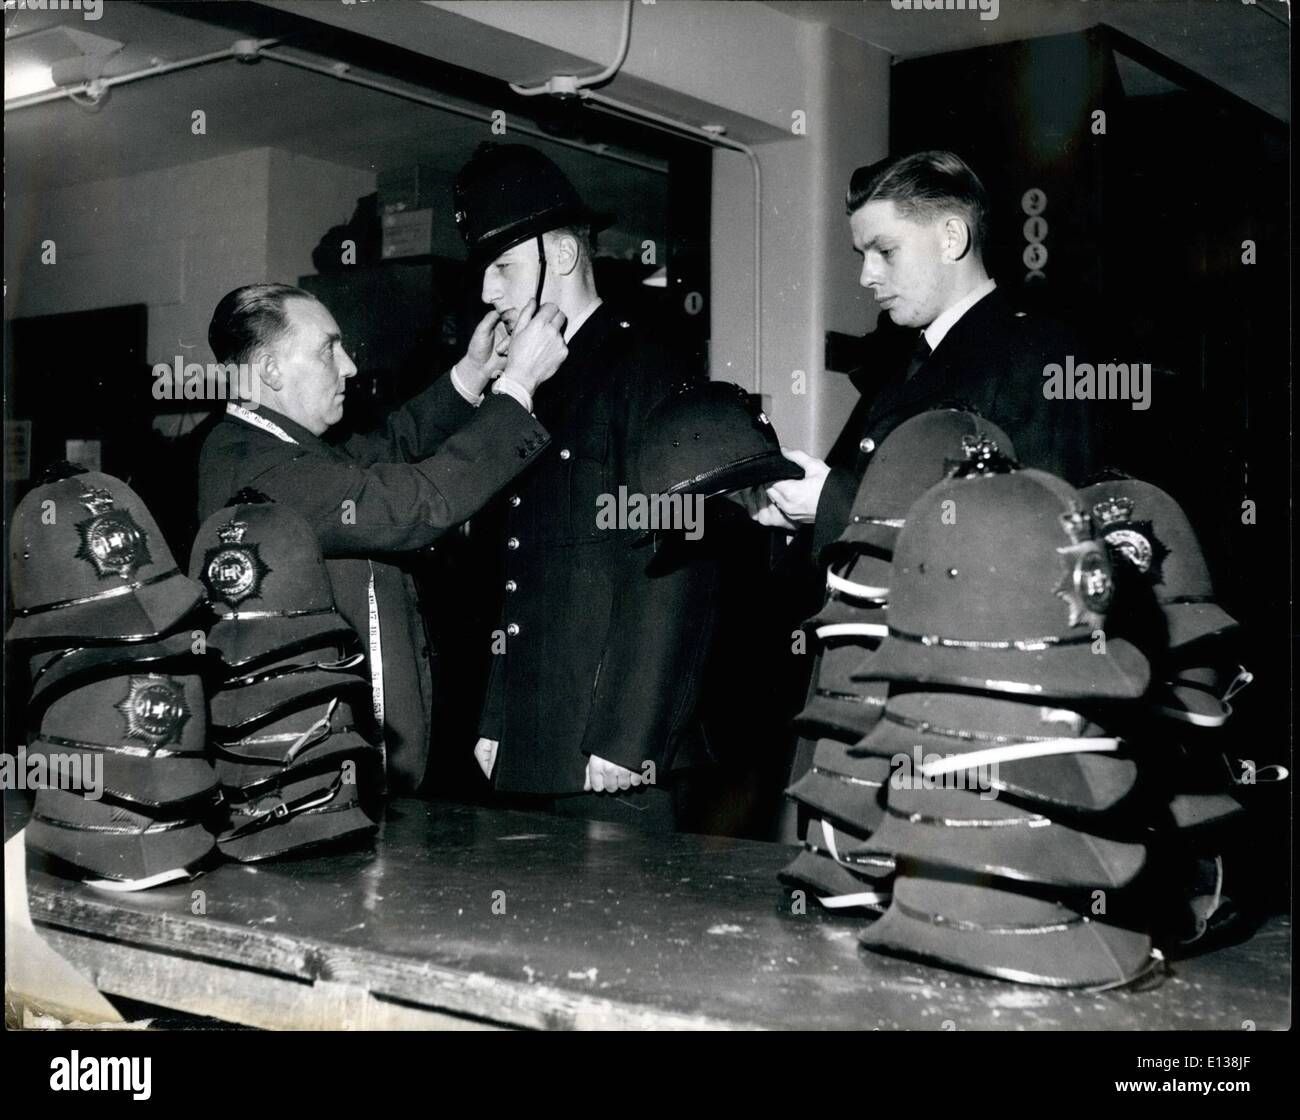 Feb. 29, 2012 - Police recruits at the hat shop: Helmets of all shapes and sizes are kept both at the Metropolitan Police Training School, Hendon and at the Divisions to which the constables are posted after posing out. Constables Bottrill and Birthchnell are getting their's now. - Stock Image